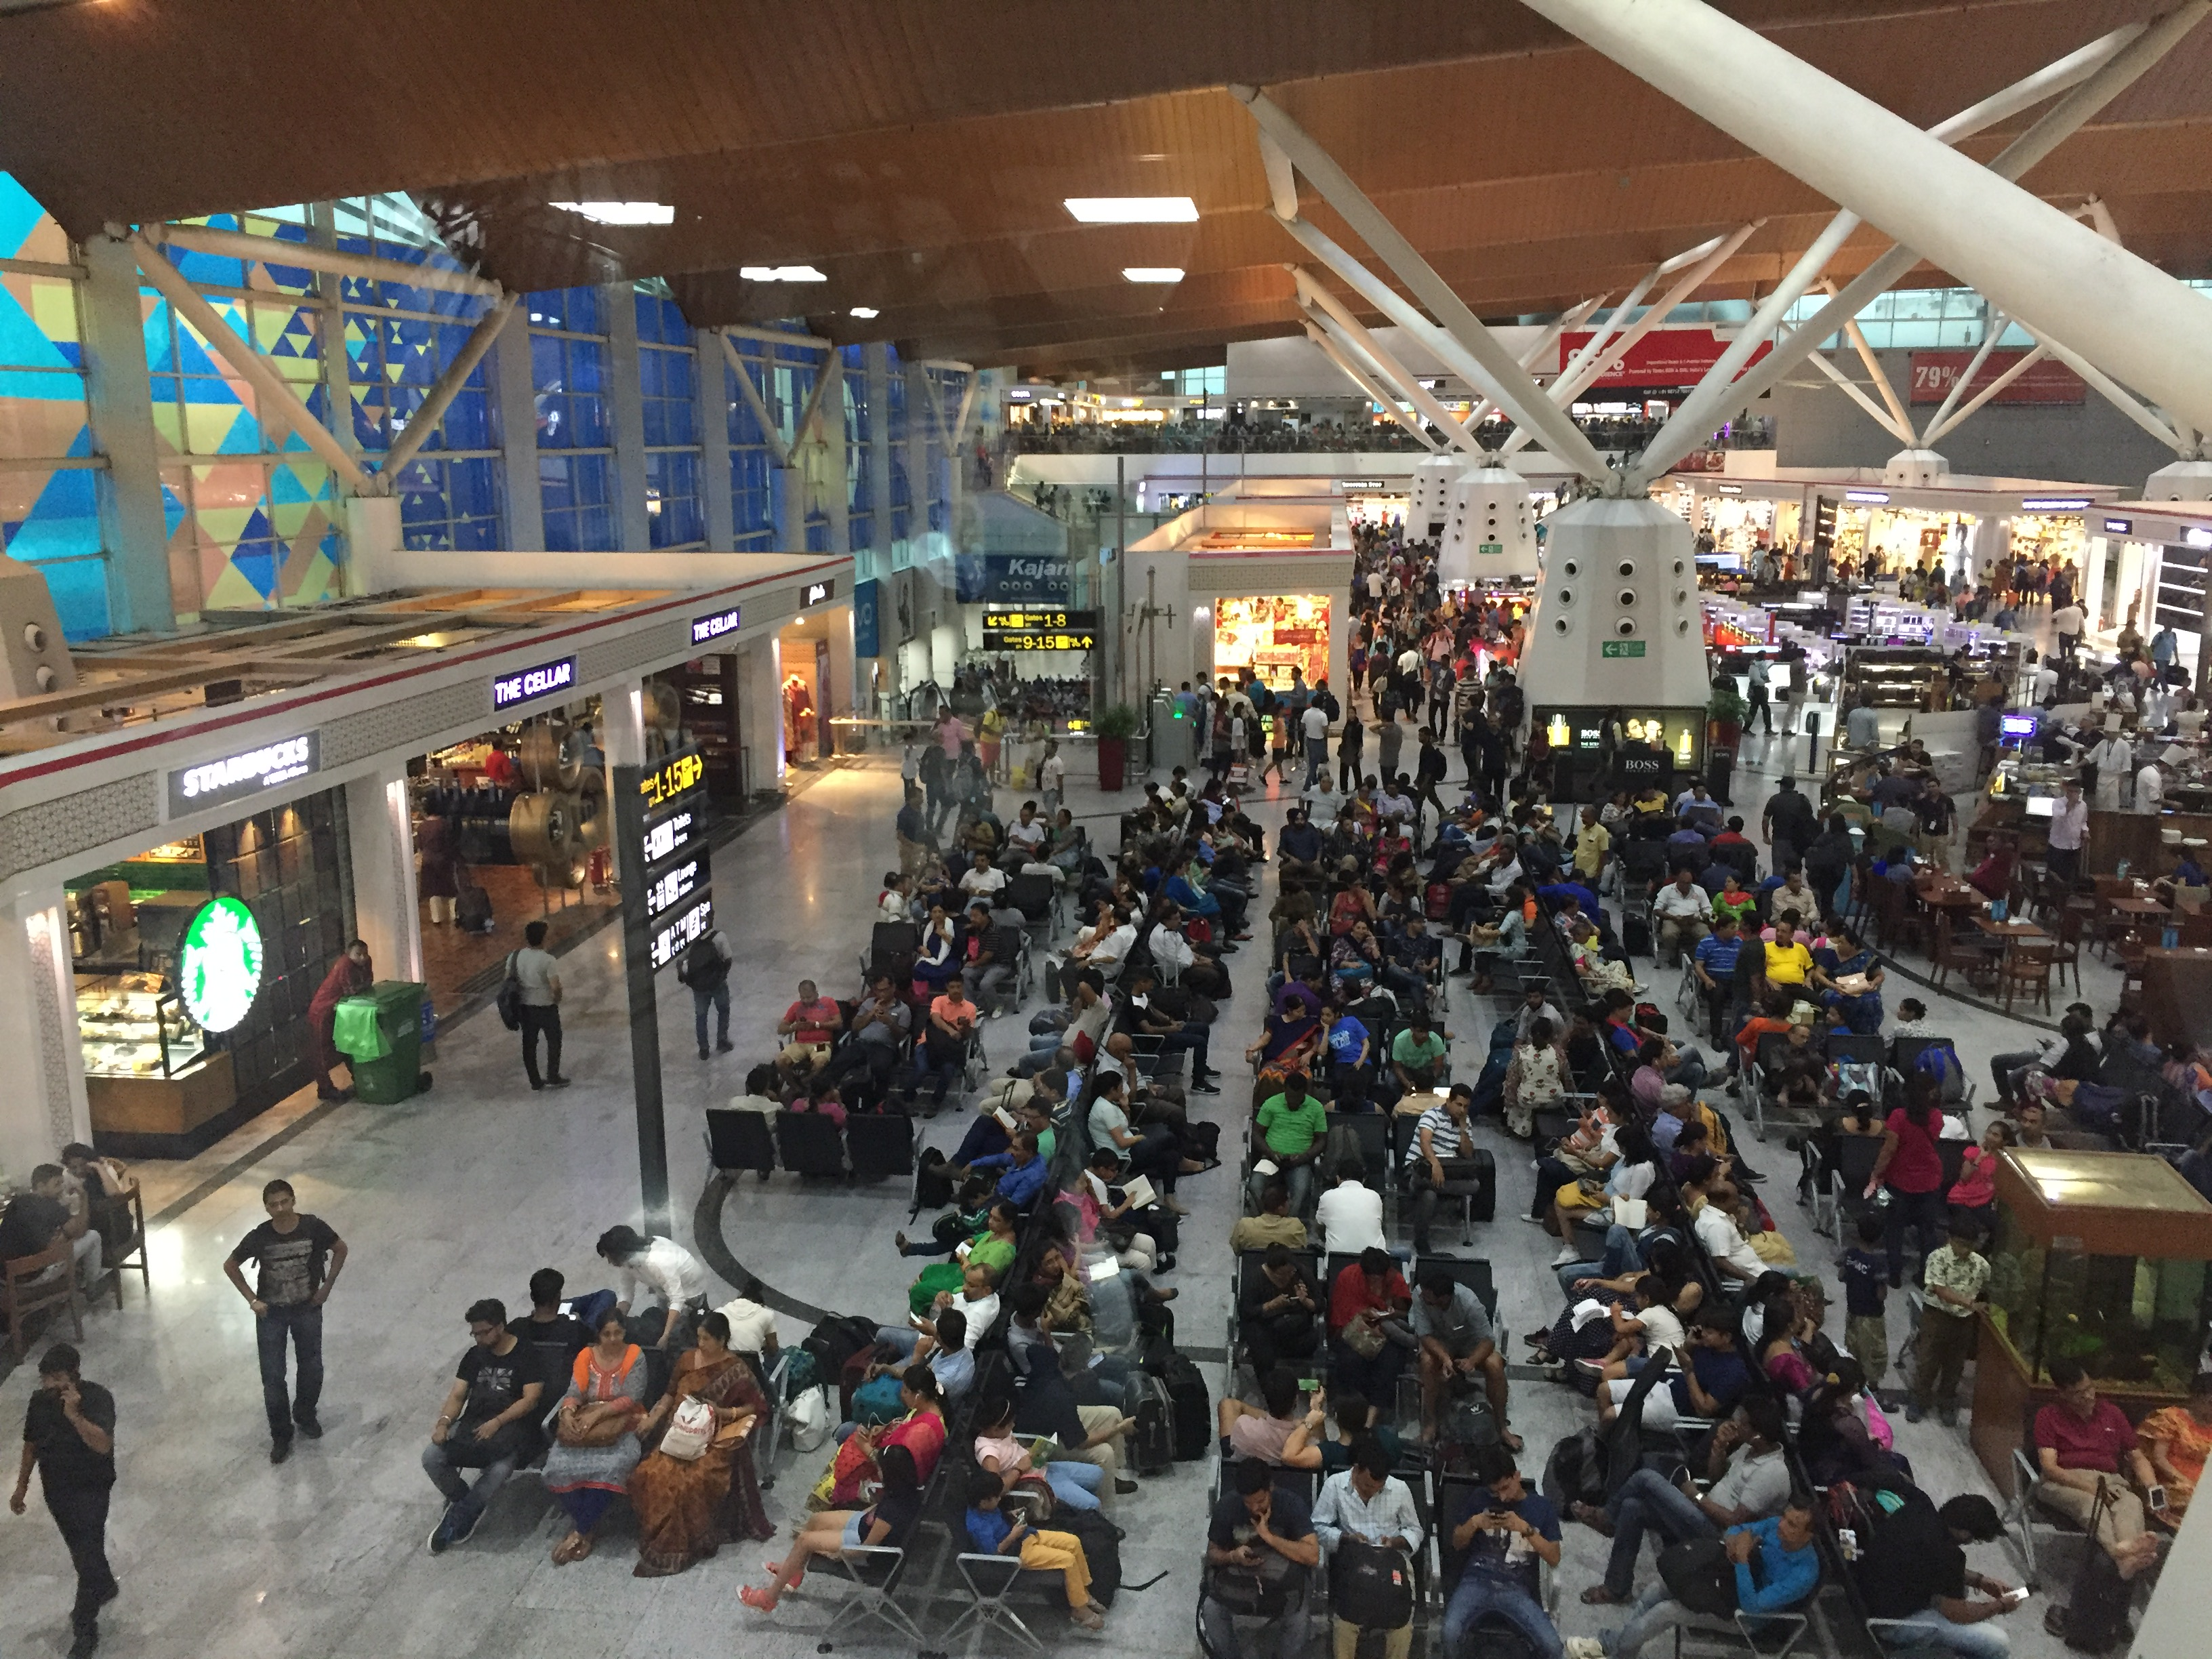 Delhi Airport Terminal 1 Crowd